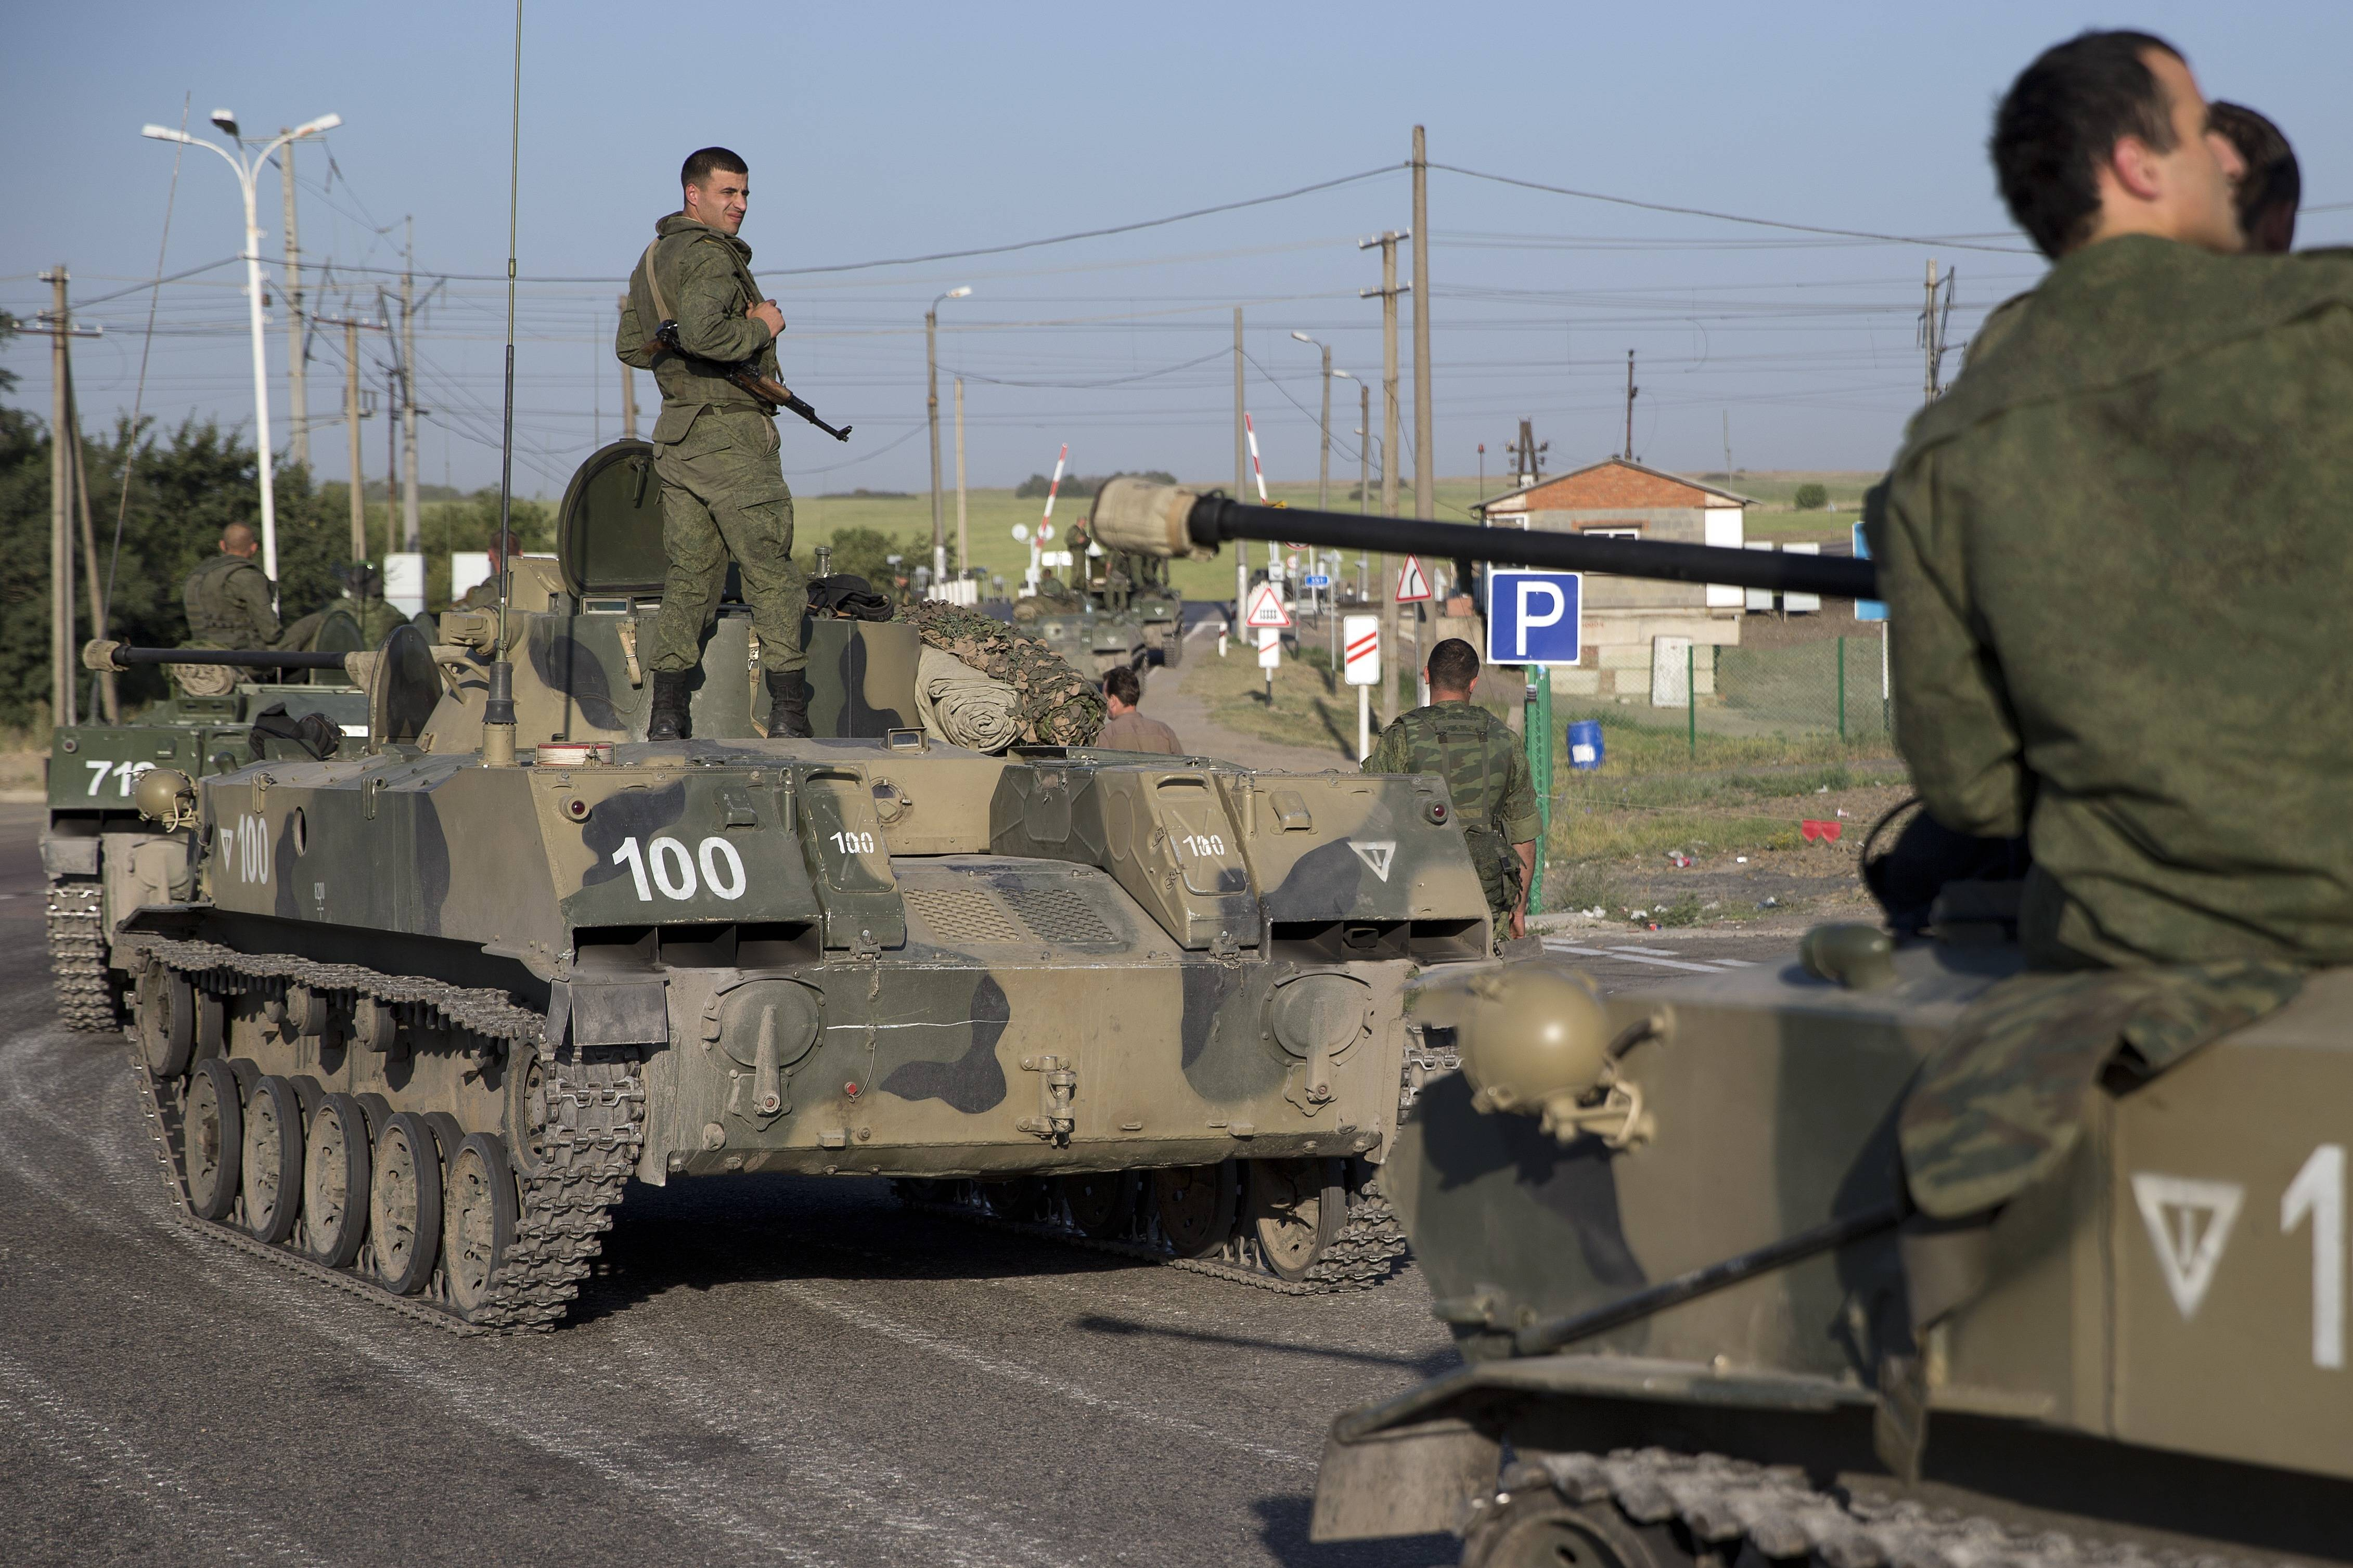 Russian solders with their several military vehicle gather at the rail road crossing early Friday about 19 miles from Ukrainian border at Rostov-on-Don region, Russia.